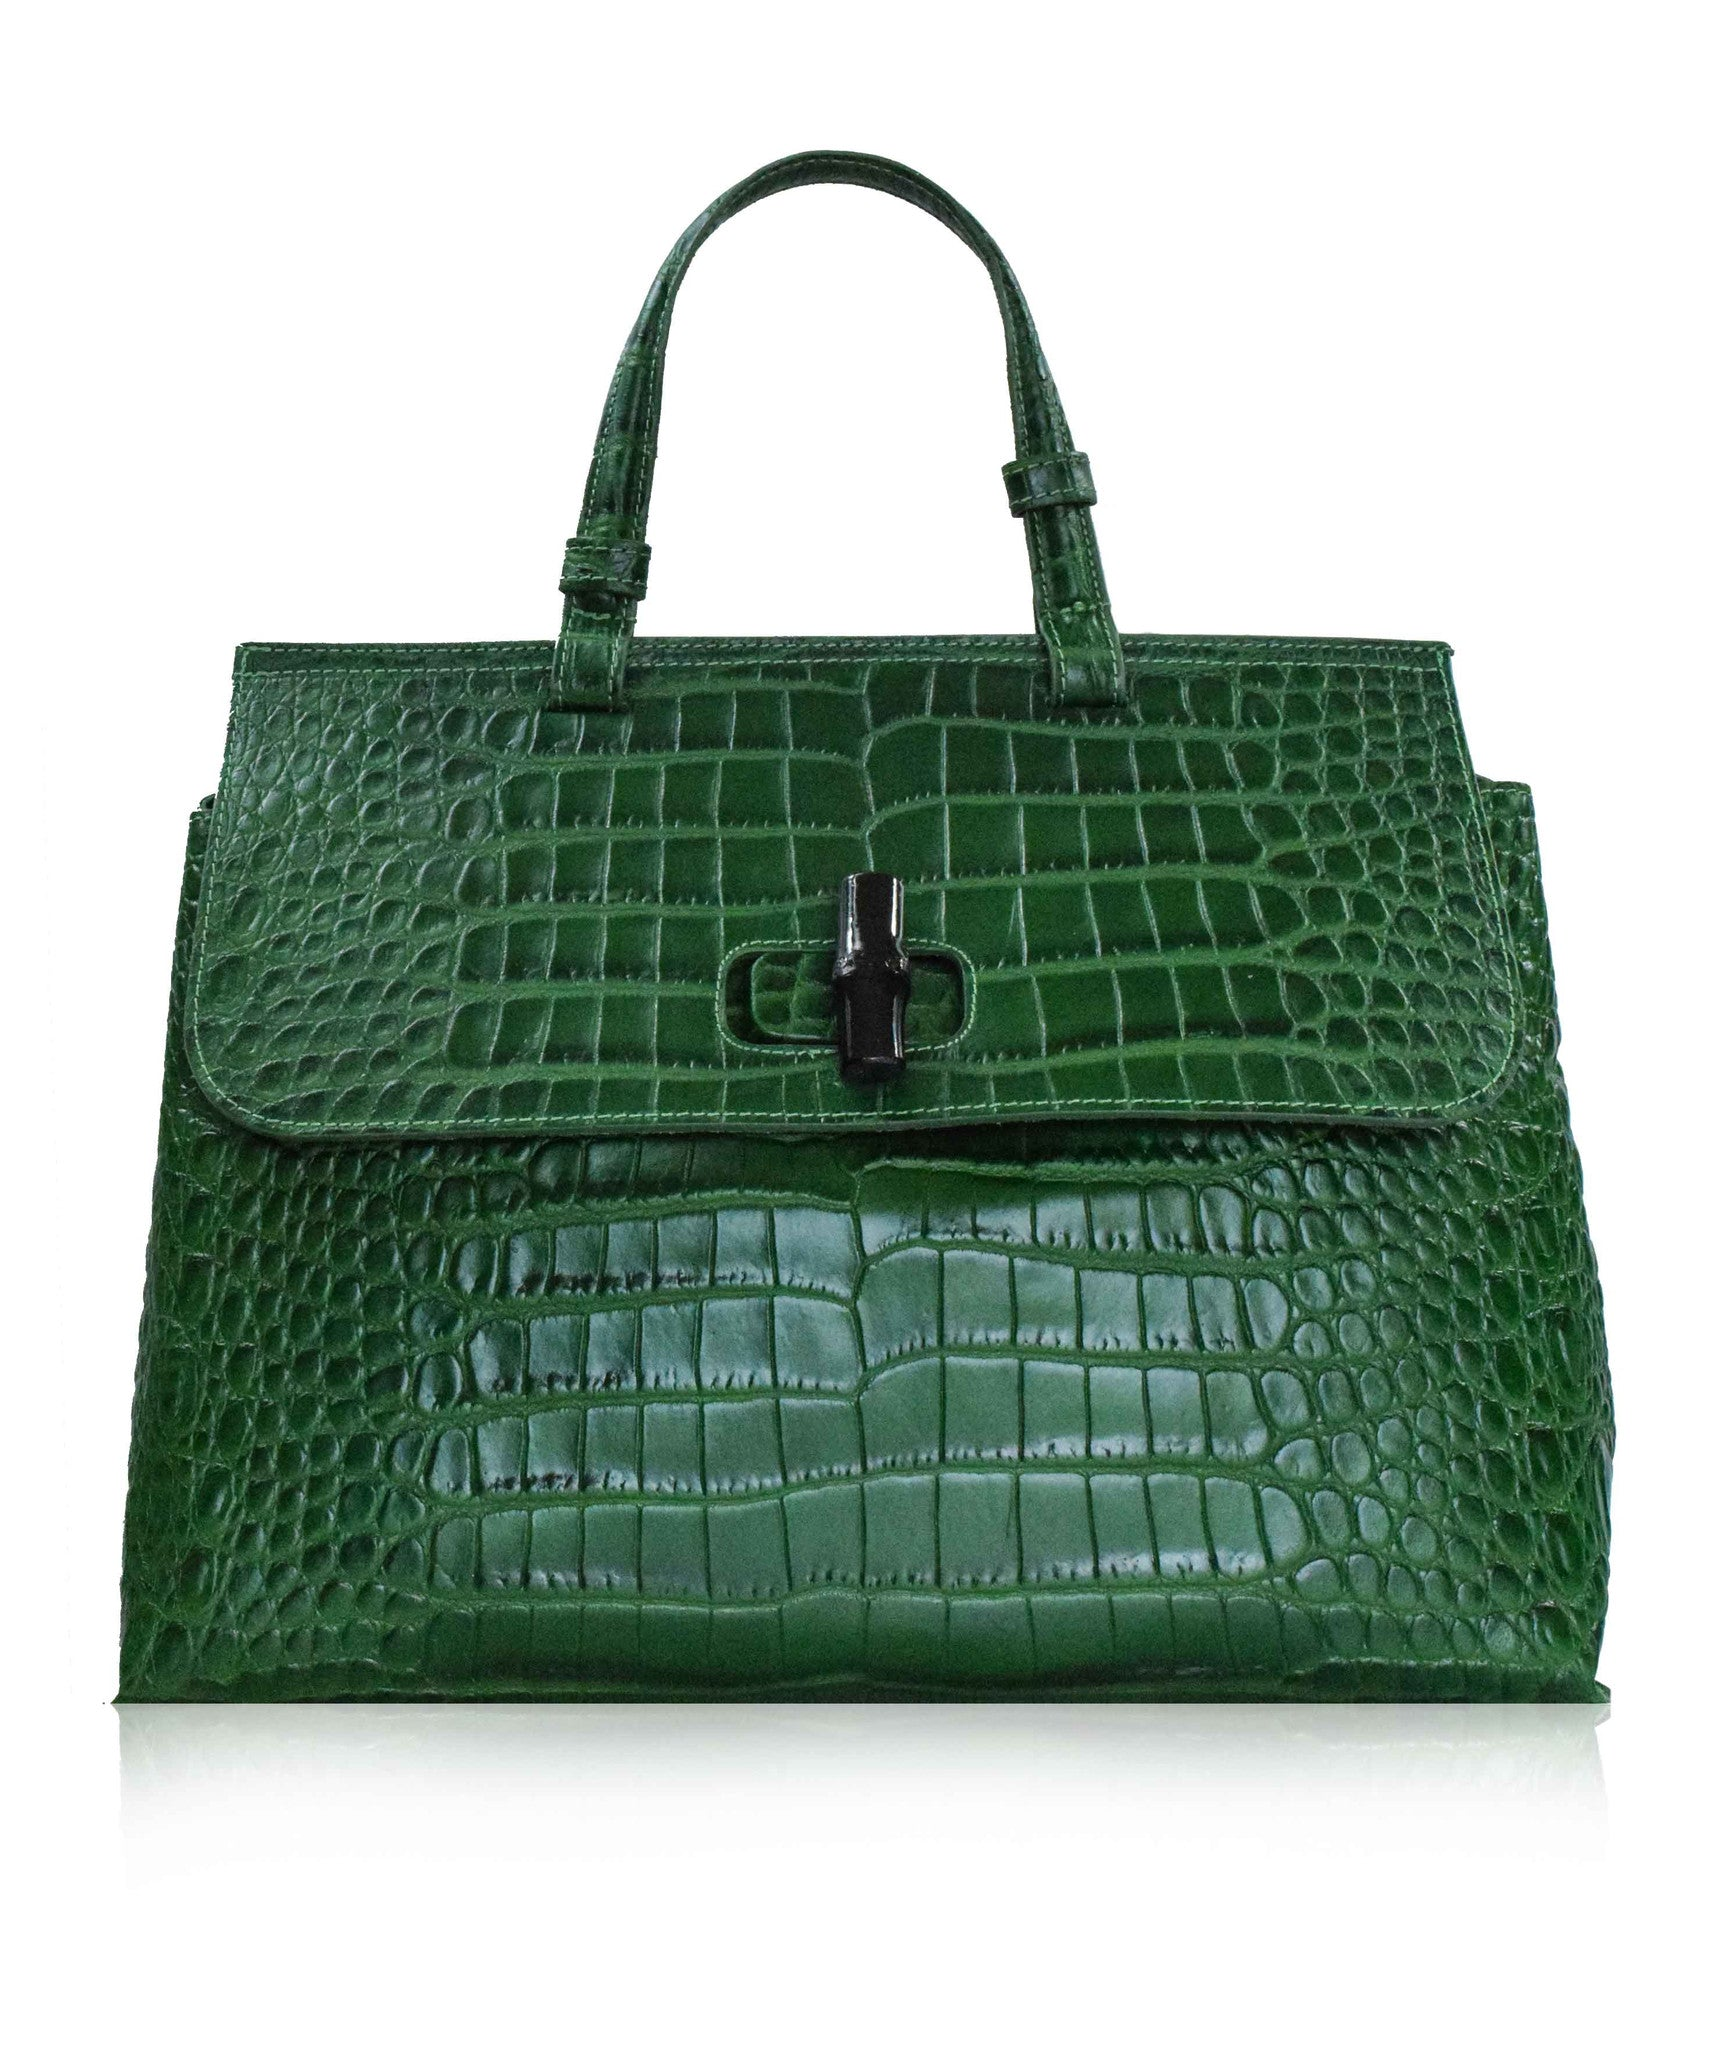 f8bb8ae5 CASOLE Large Green Gucci Bamboo Top Handle Tote Bag | Florence ...